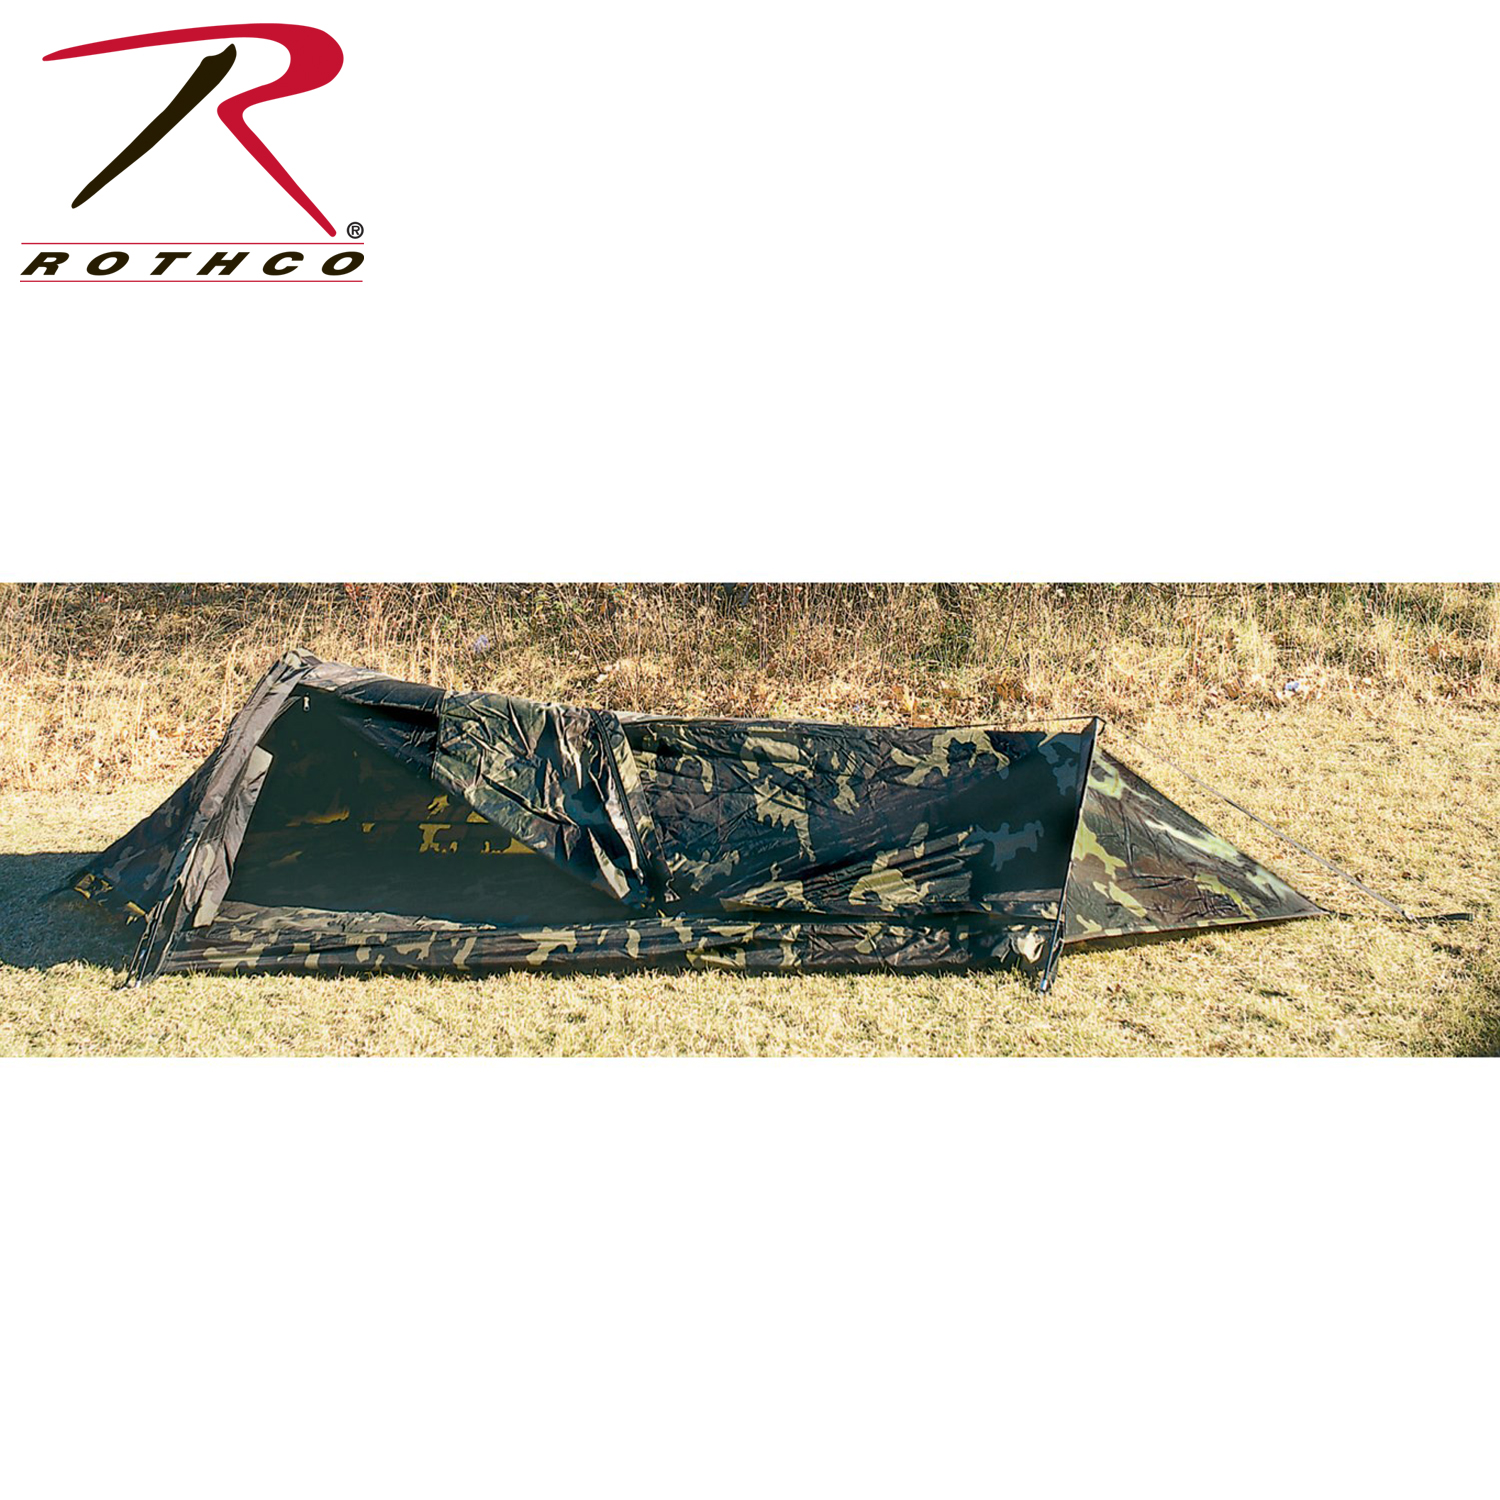 tentc&ing tentc&ing suppliesbivouacbivouac tentshelteroutdoor  sc 1 st  Rothco : tent parts and supplies - memphite.com